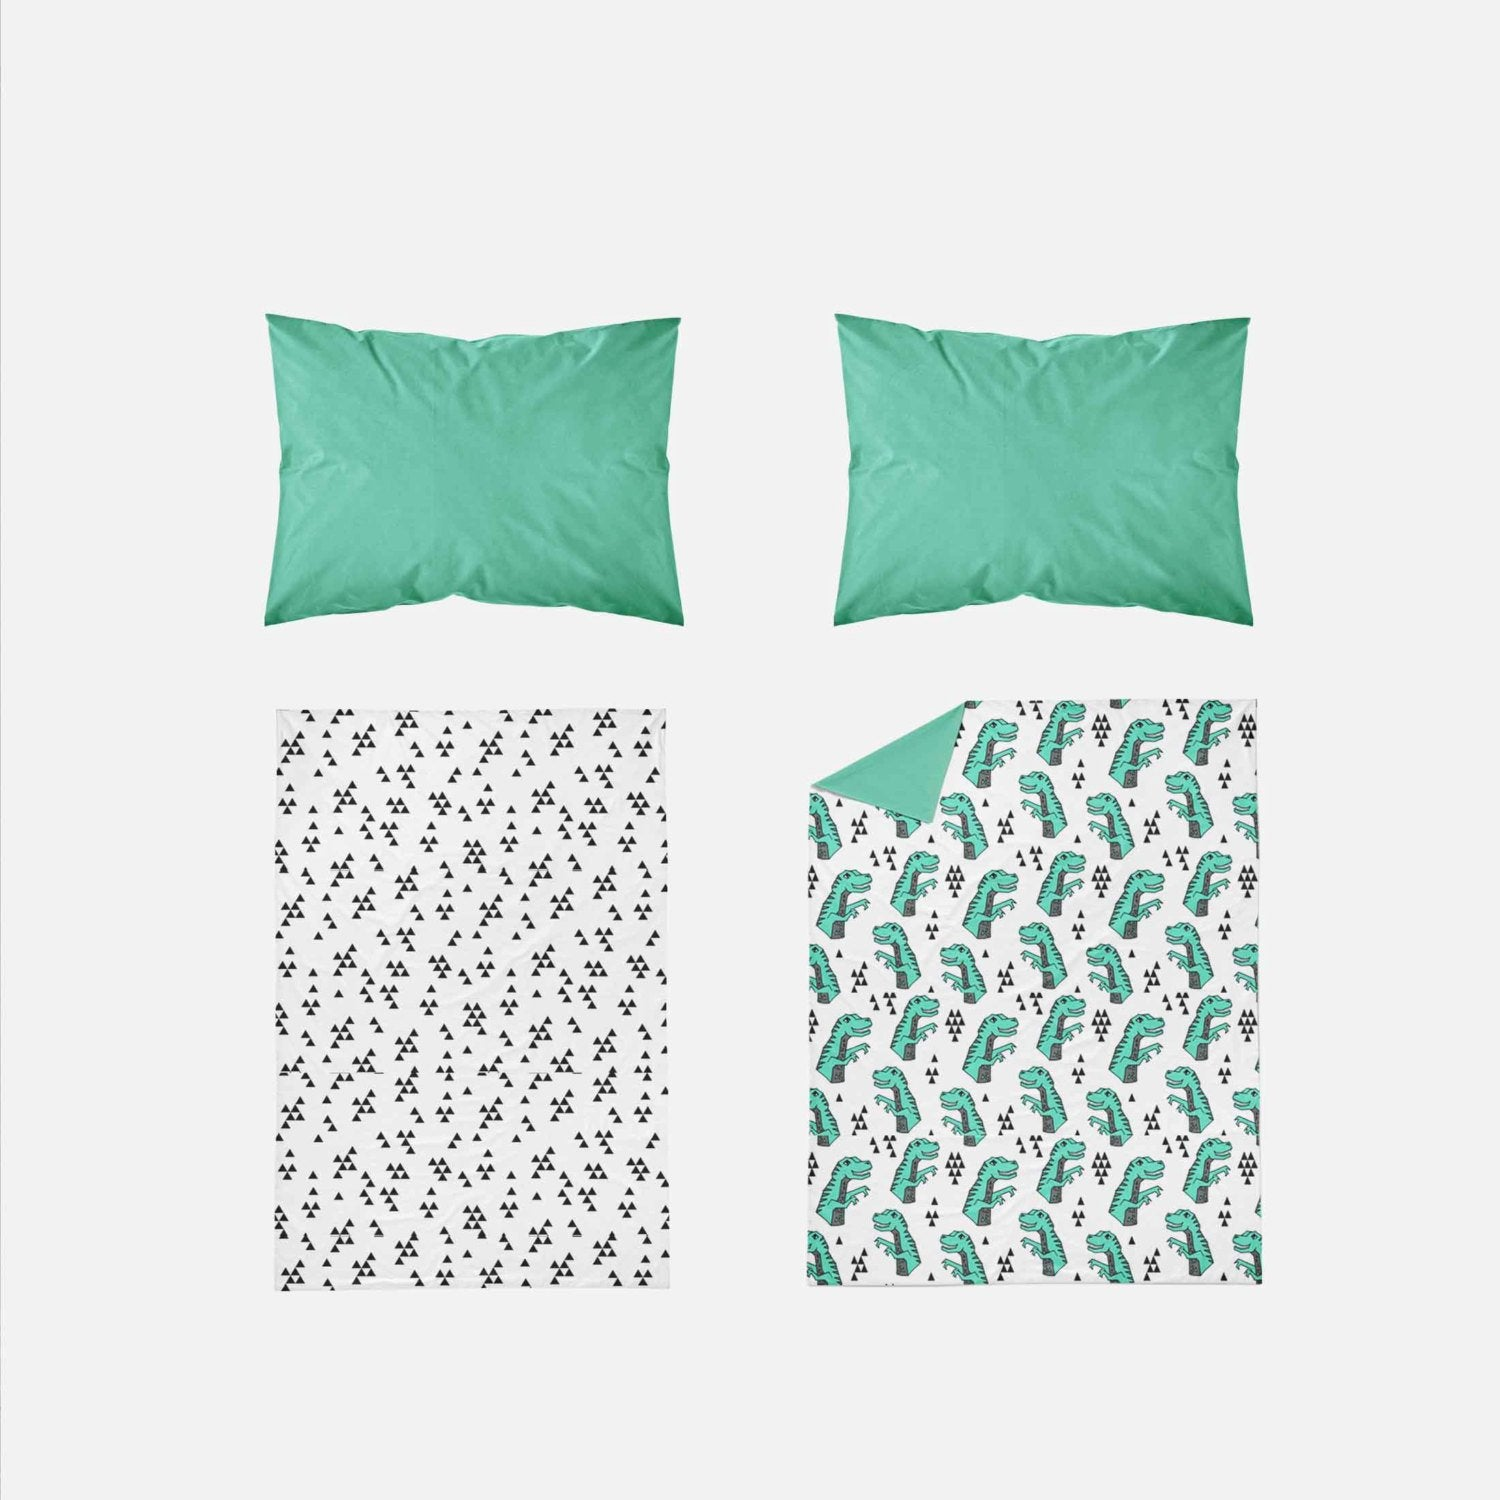 Boy Toddler Bedding Sets - Green Dinosaur T Rex - Orange Blossom Special  @orangeblossomspecial805